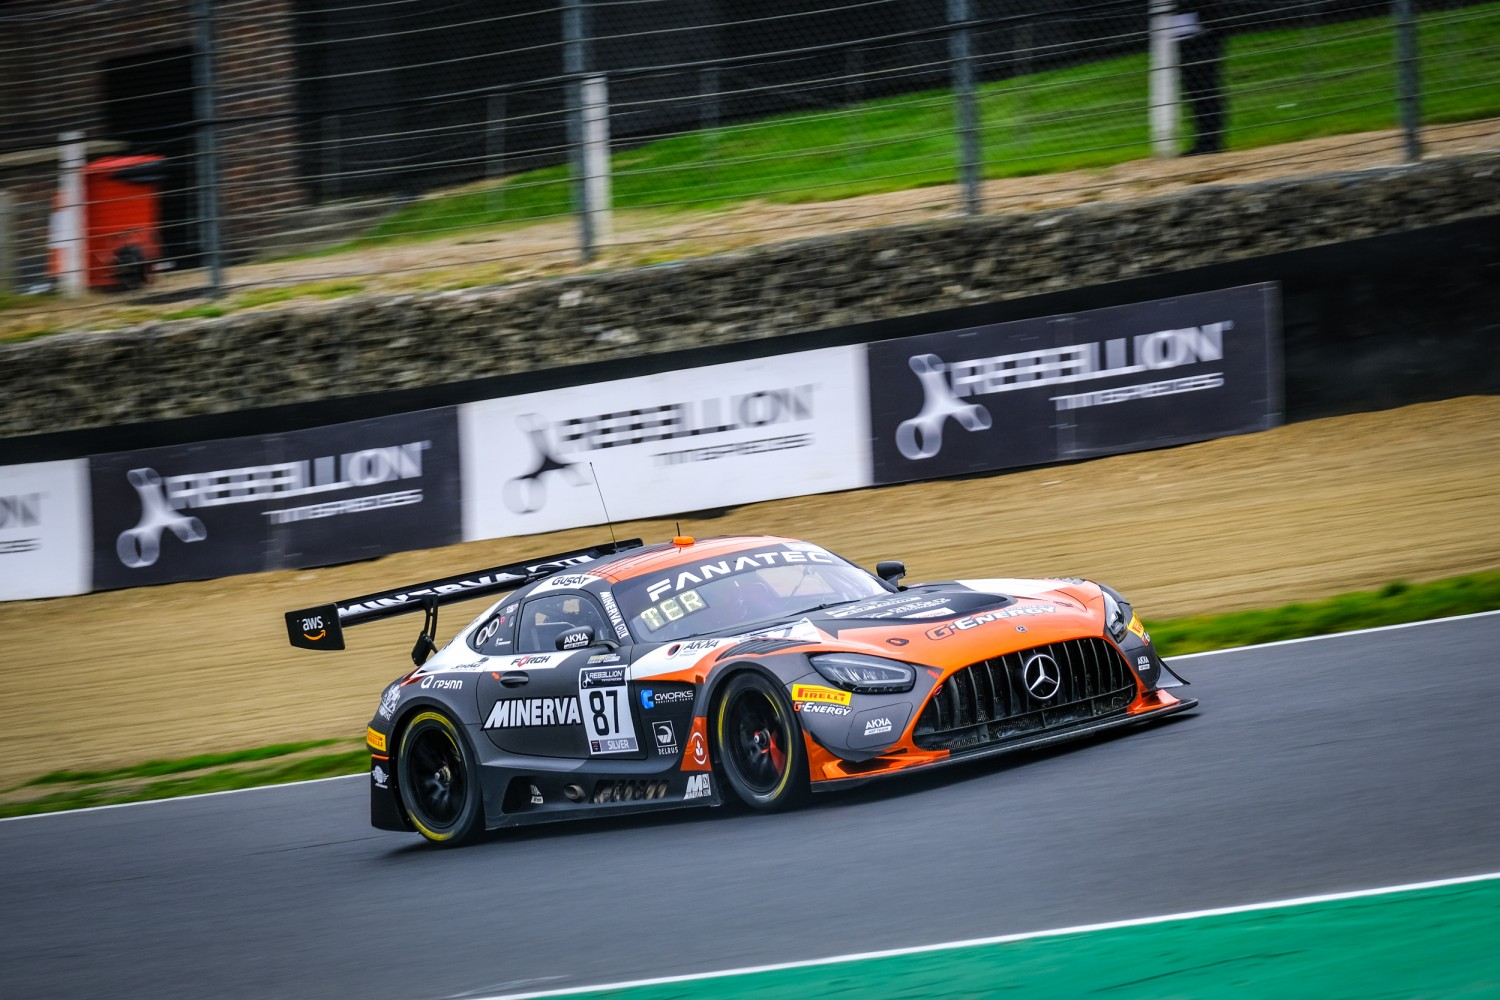 Pla puts AKKA ASP Mercedes-AMG on top in practice at Brands Hatch